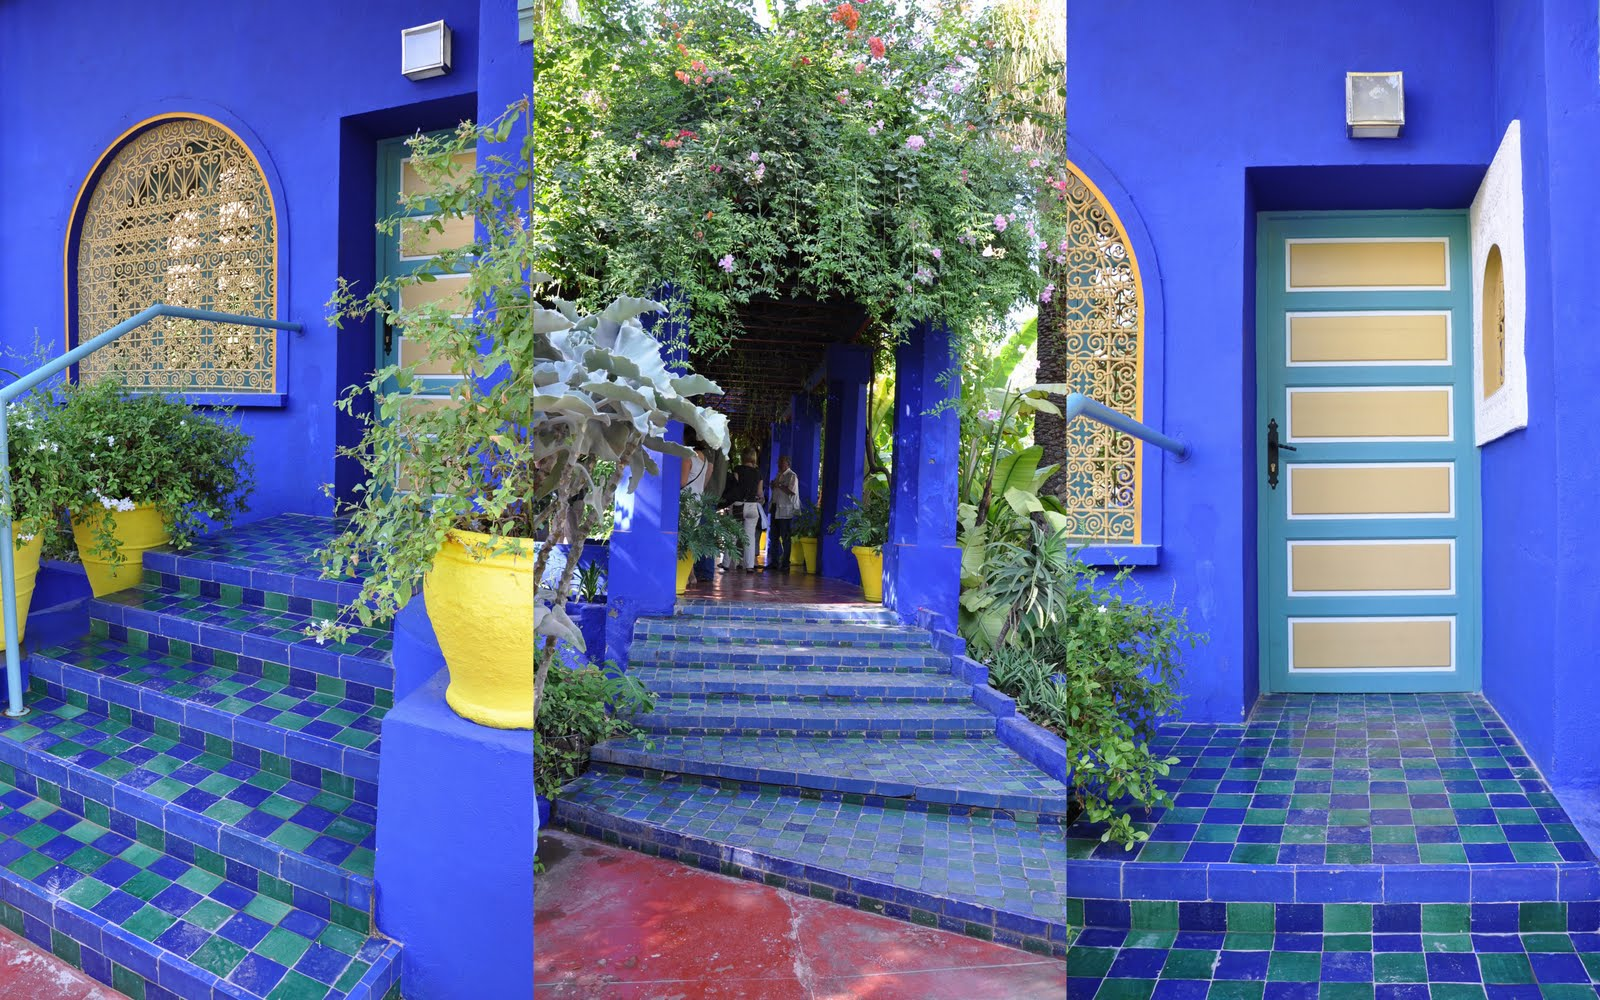 The olive journey jardin majorelle marakech morocco for Jardin majorelle